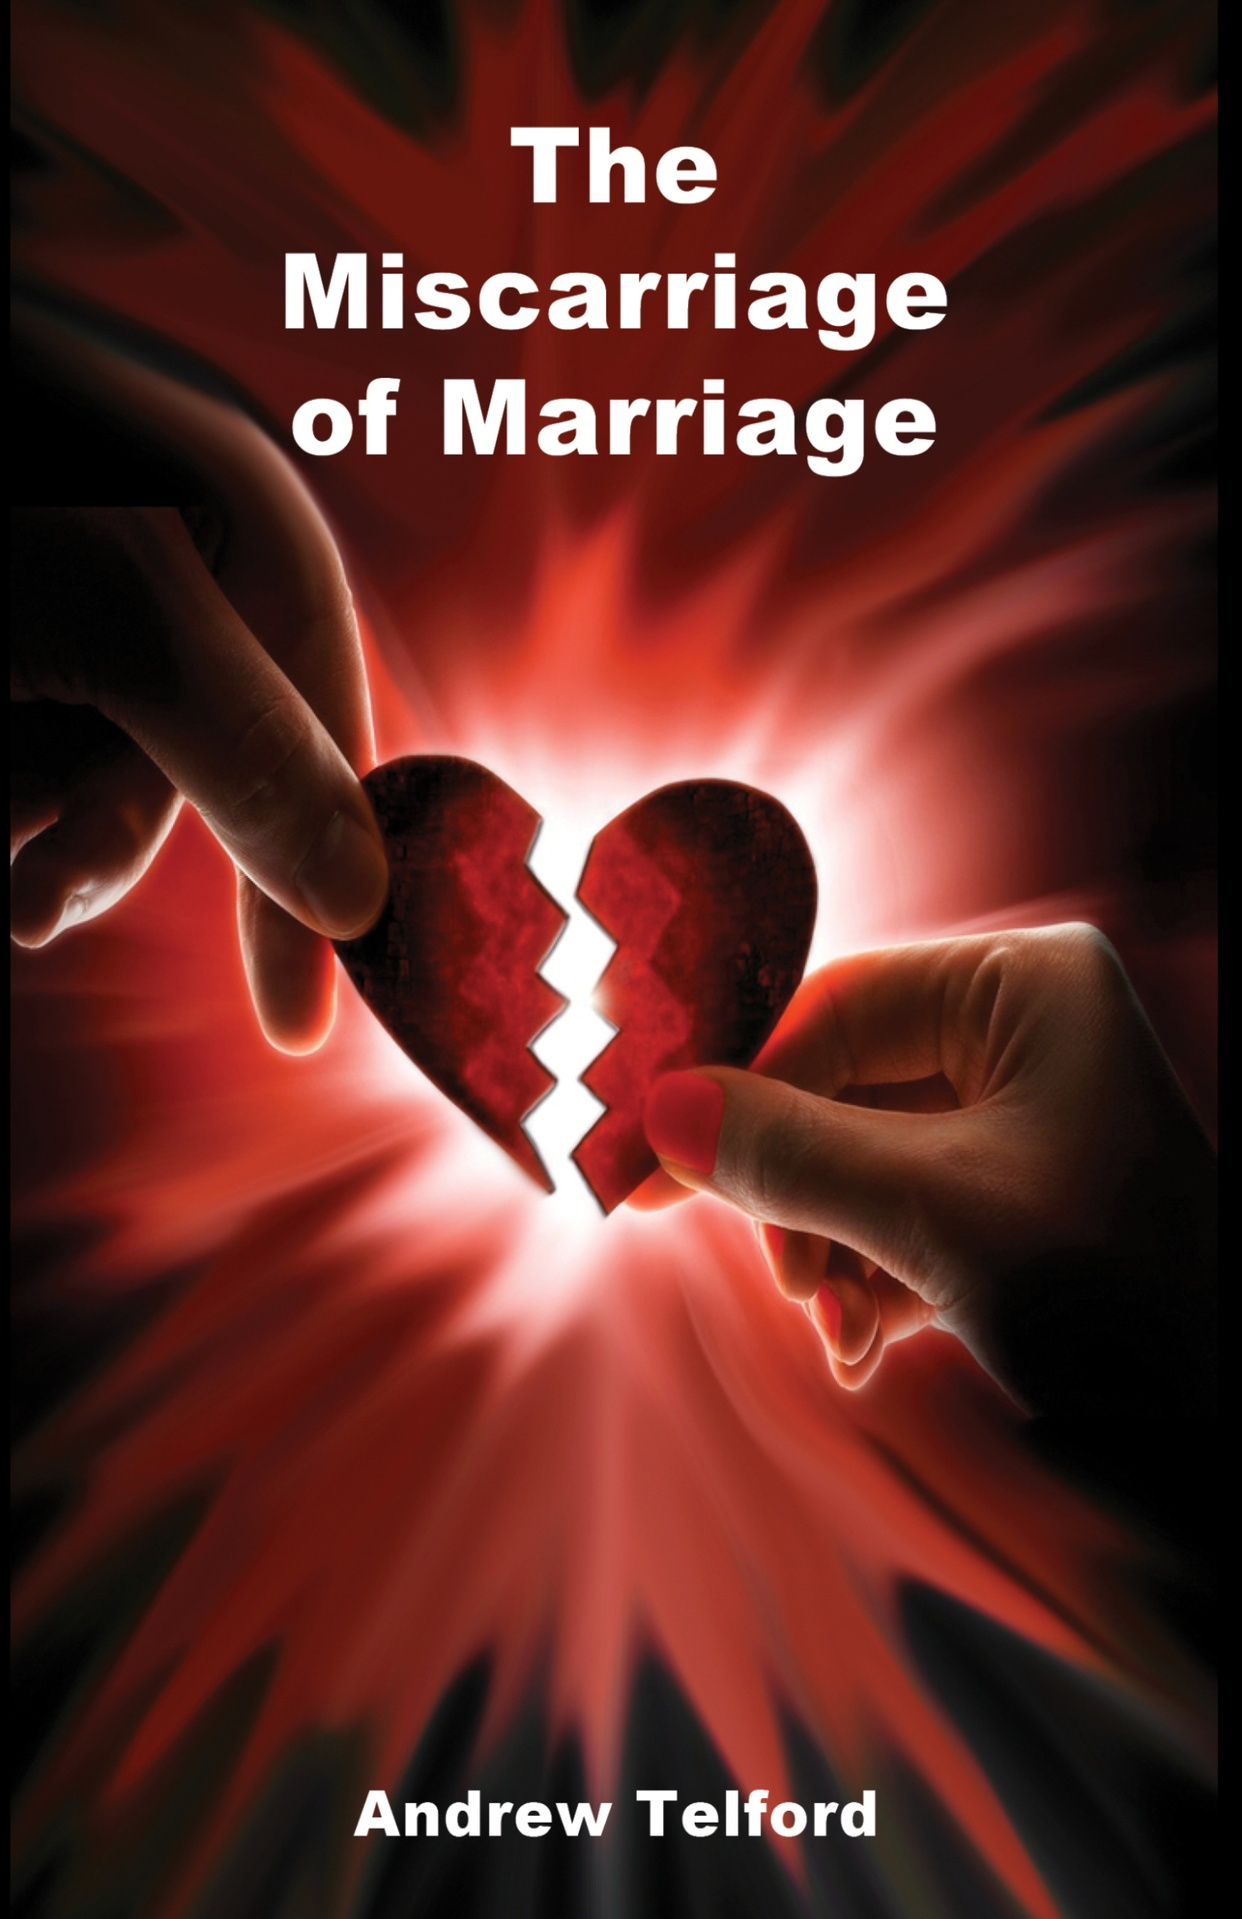 The Miscarriage of Marriage